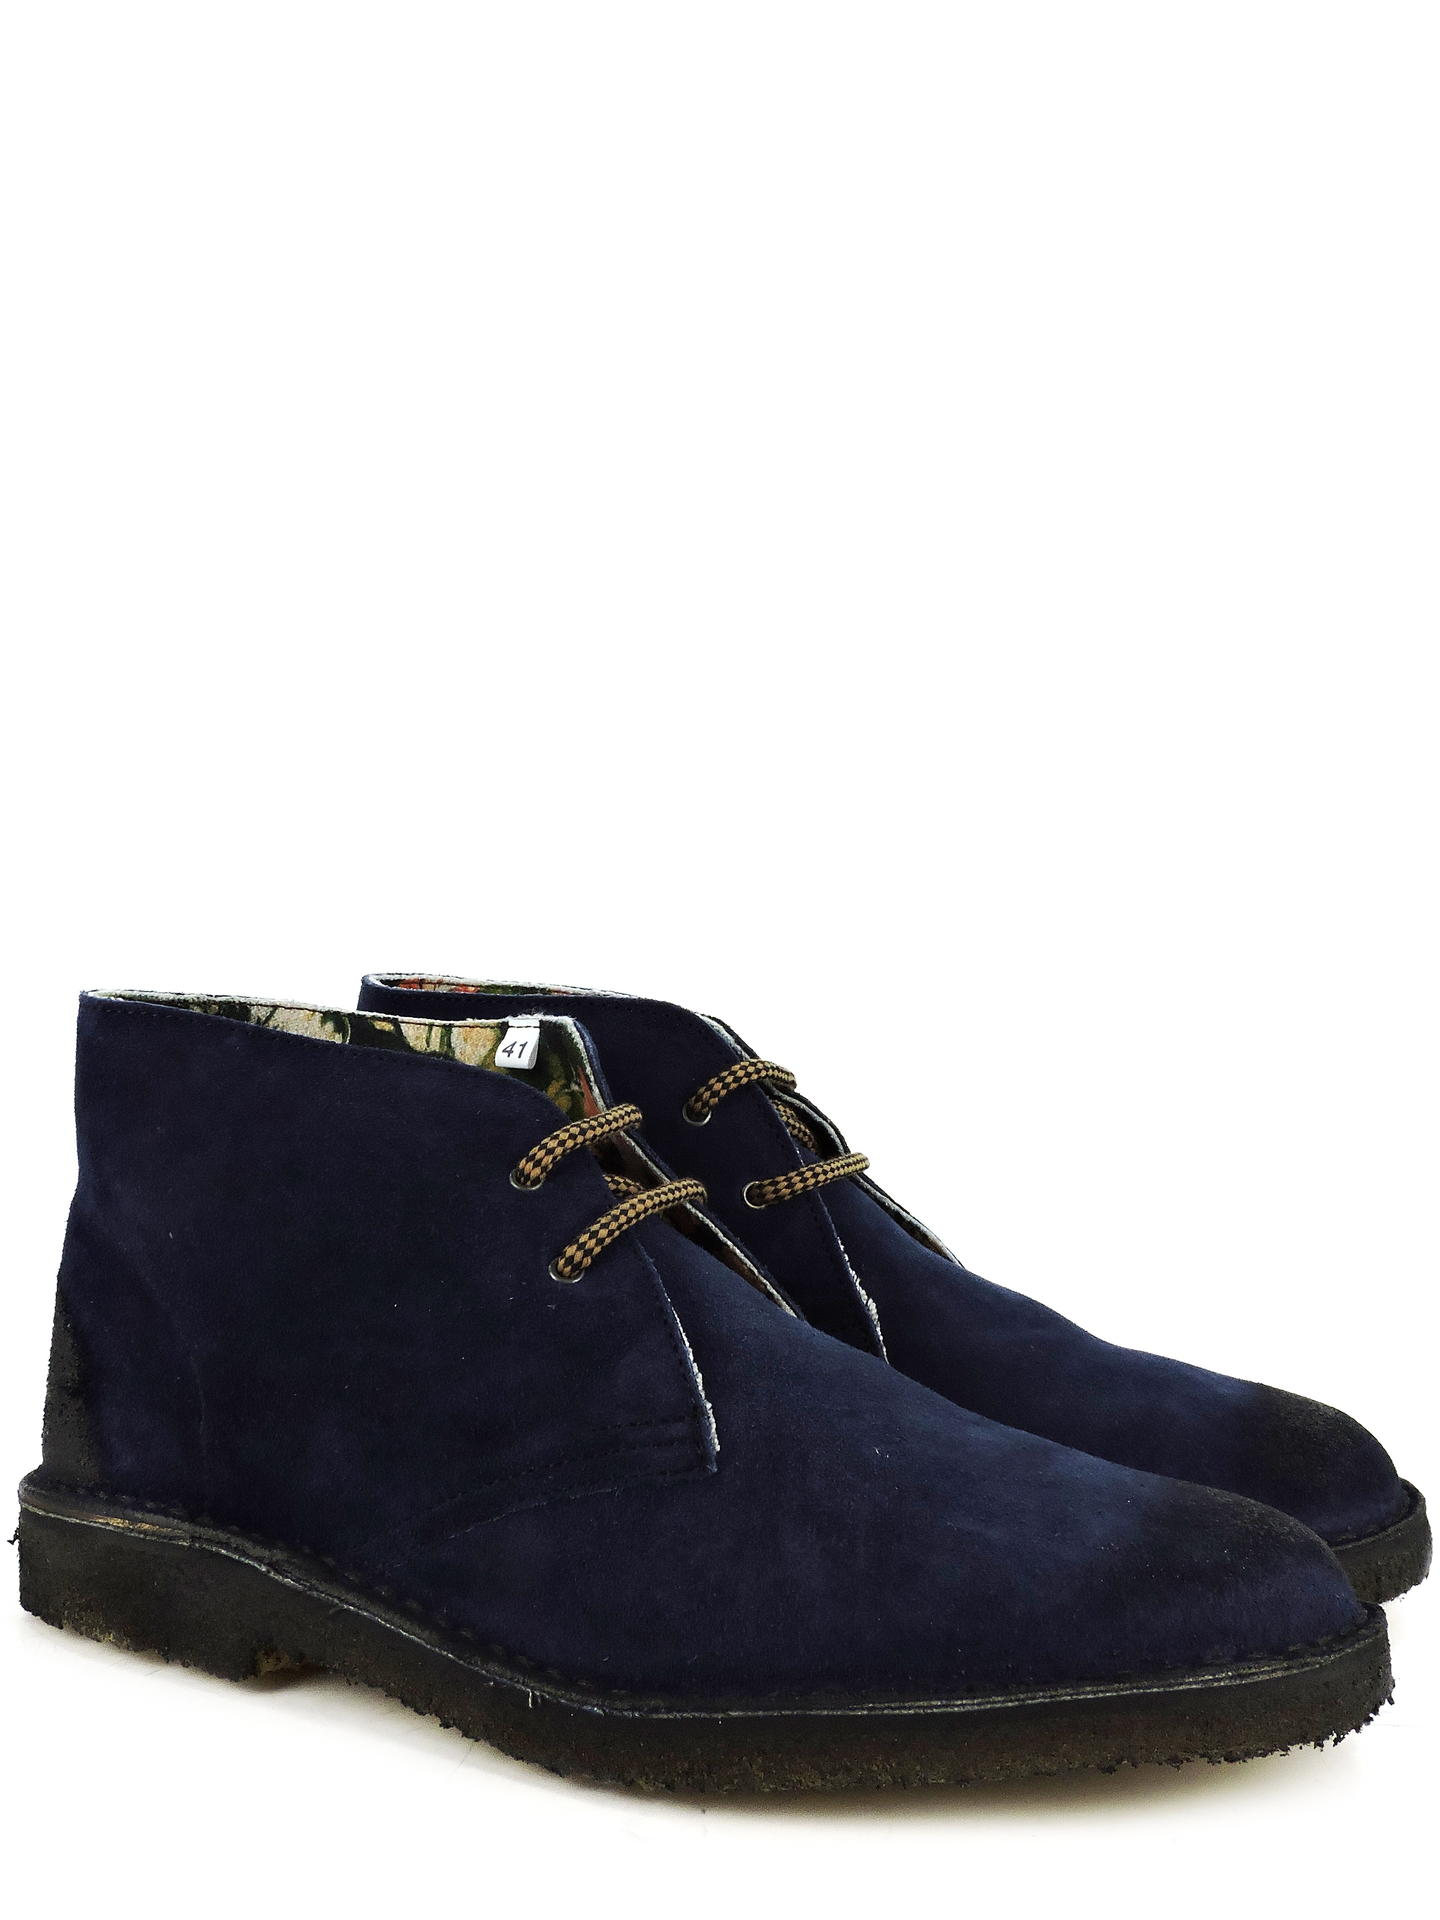 STIVALETTO WEG 144-U BLUE